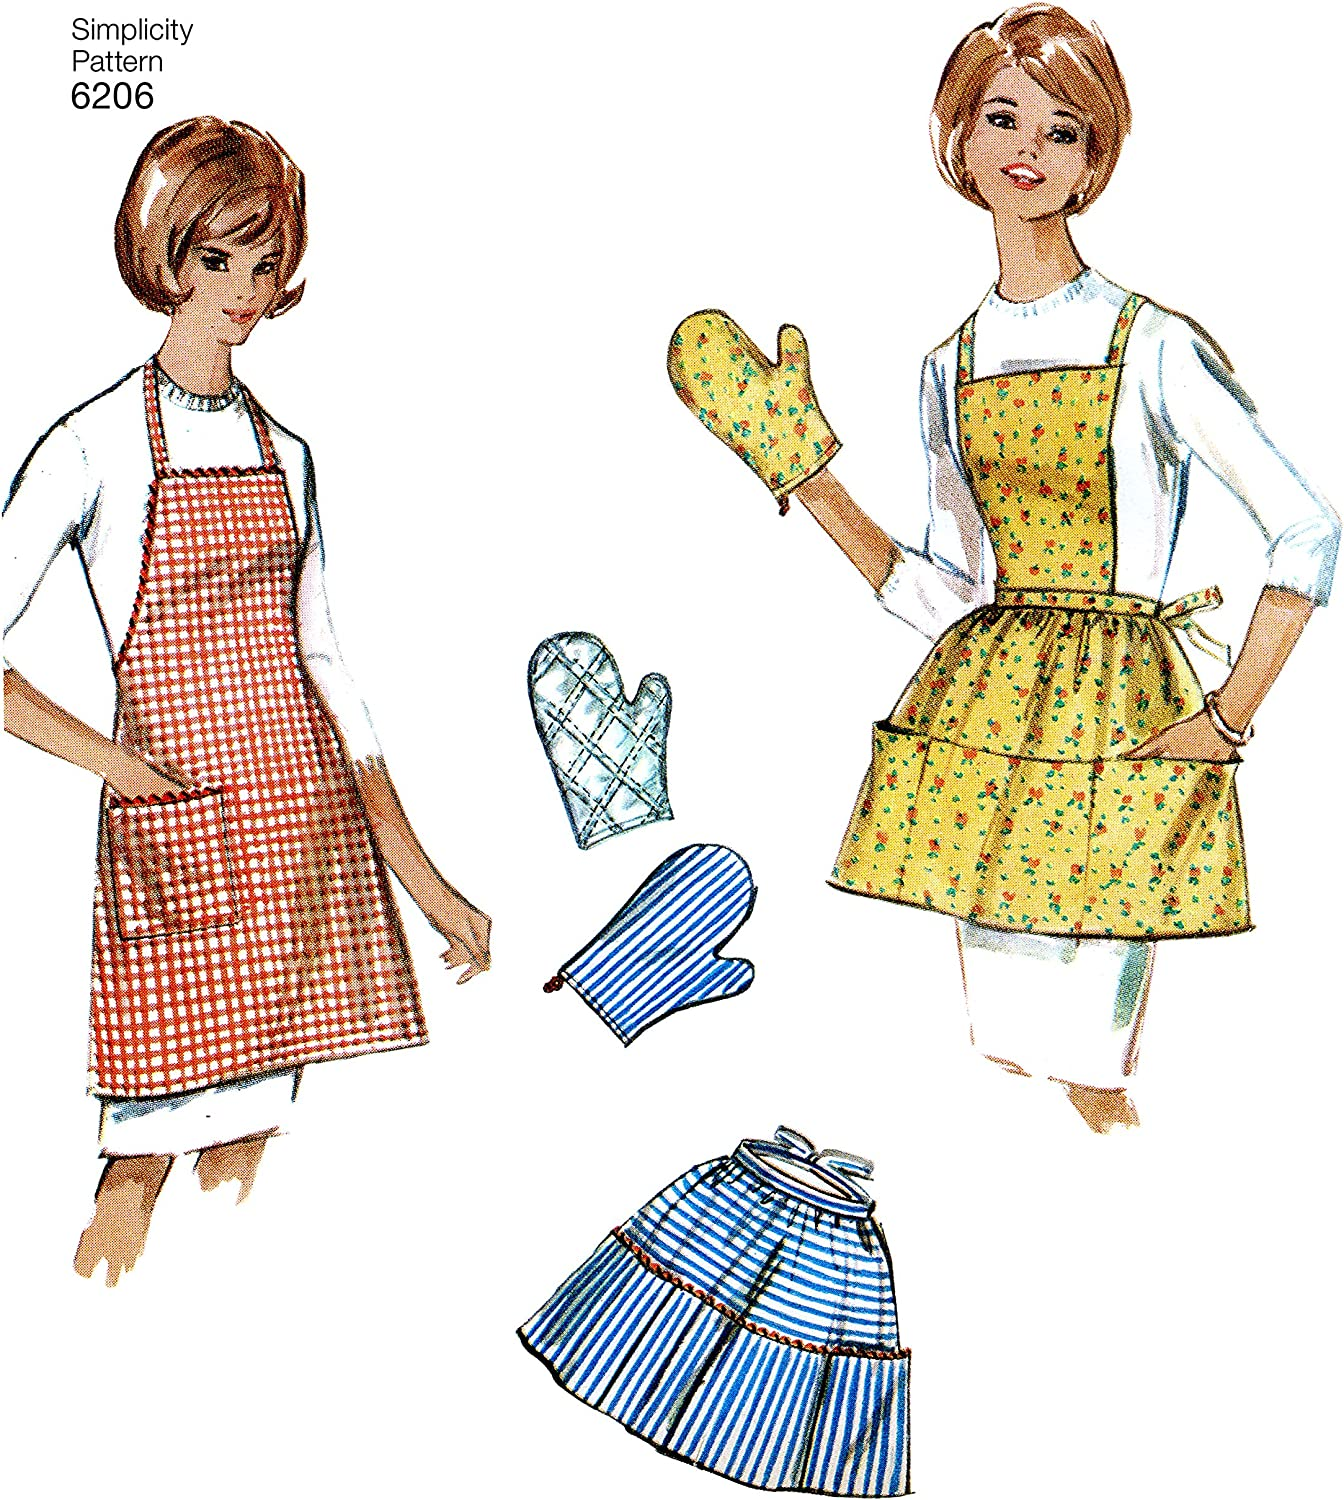 Simplicity 6206 Retro 1960s Apron Mitt Scarf Bag /& More Sewing Pattern